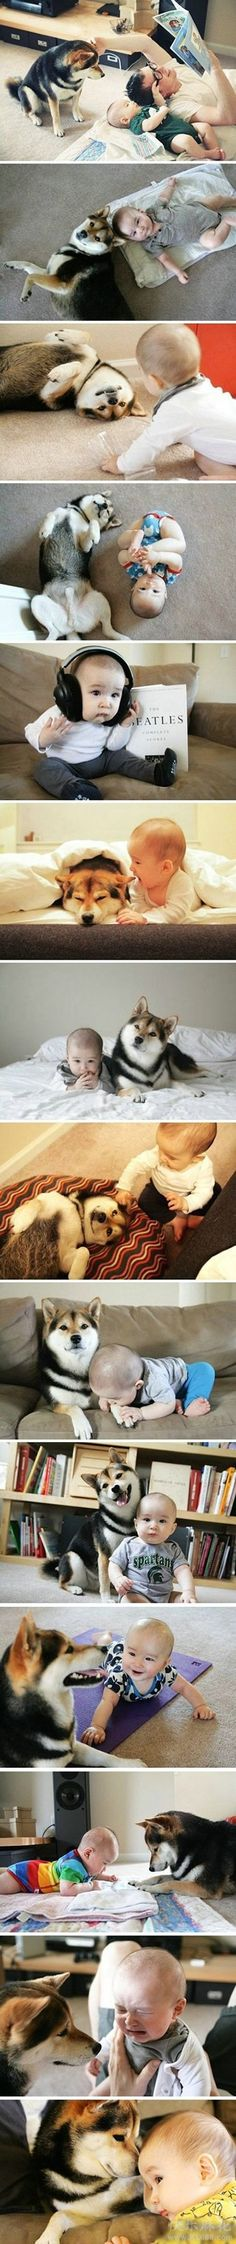 so sweet.  Nothing more precious than a baby and his guardian dog